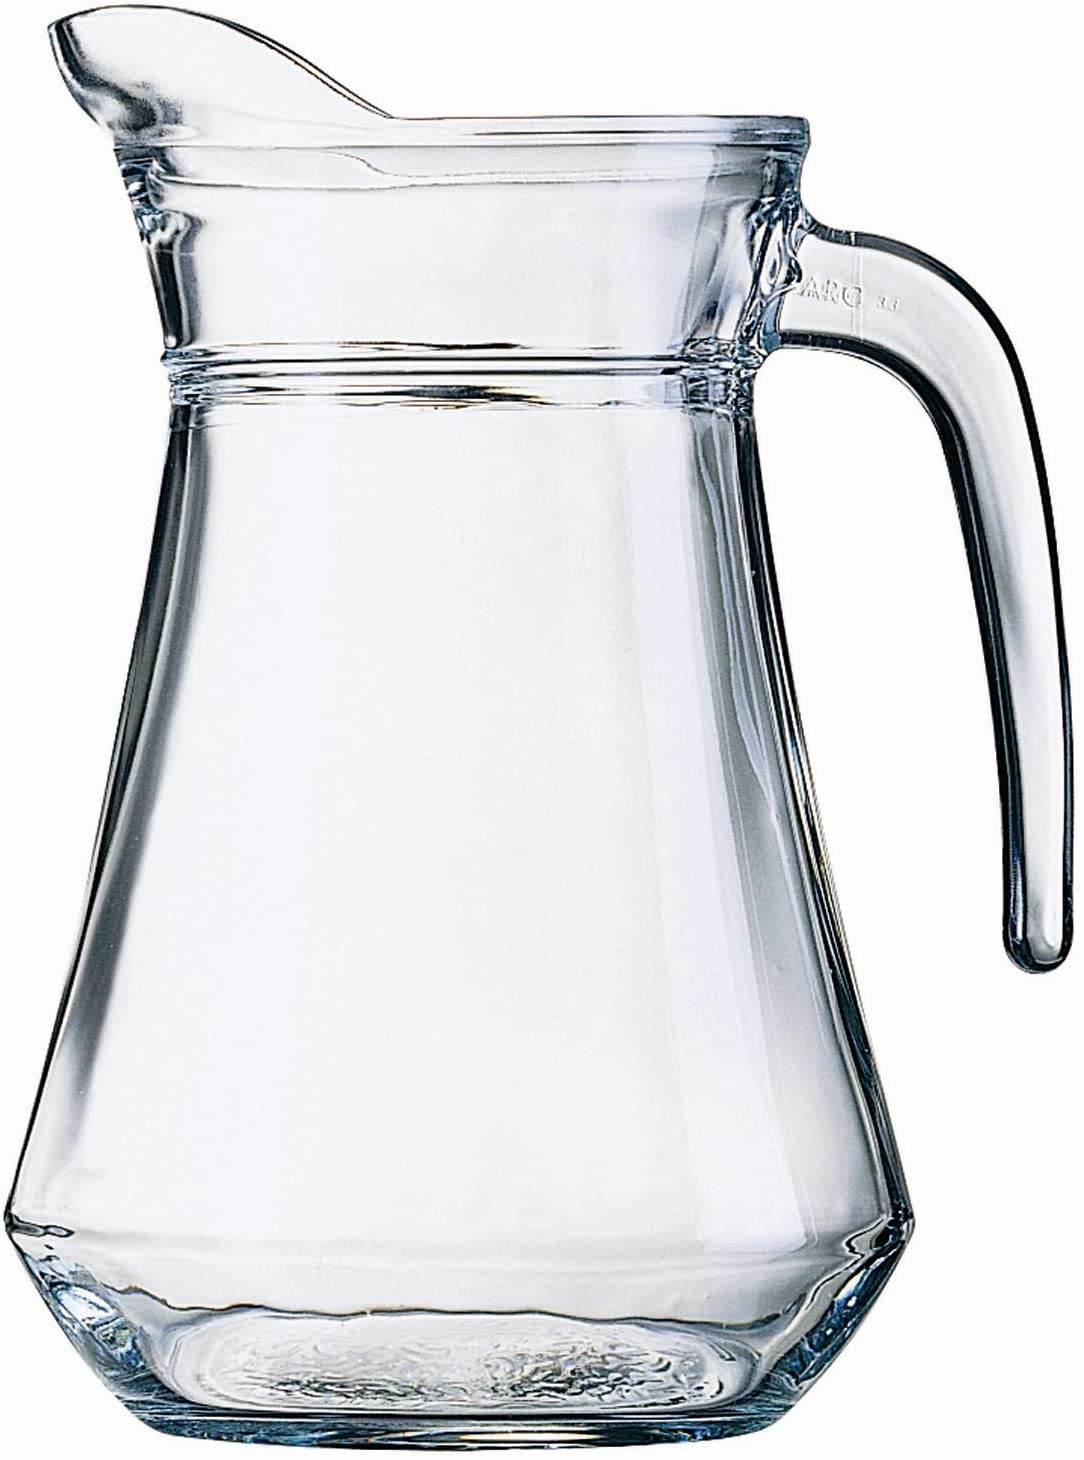 Quality Glass Pitcher With Lid And Handle - Elegant Jug Drink Ware - 1320 ml. For Cold Drinks - Water, Punch, Lemonade, Juice, Milk, Ice Coffee - 1.3ml. or 44 0z. (1)